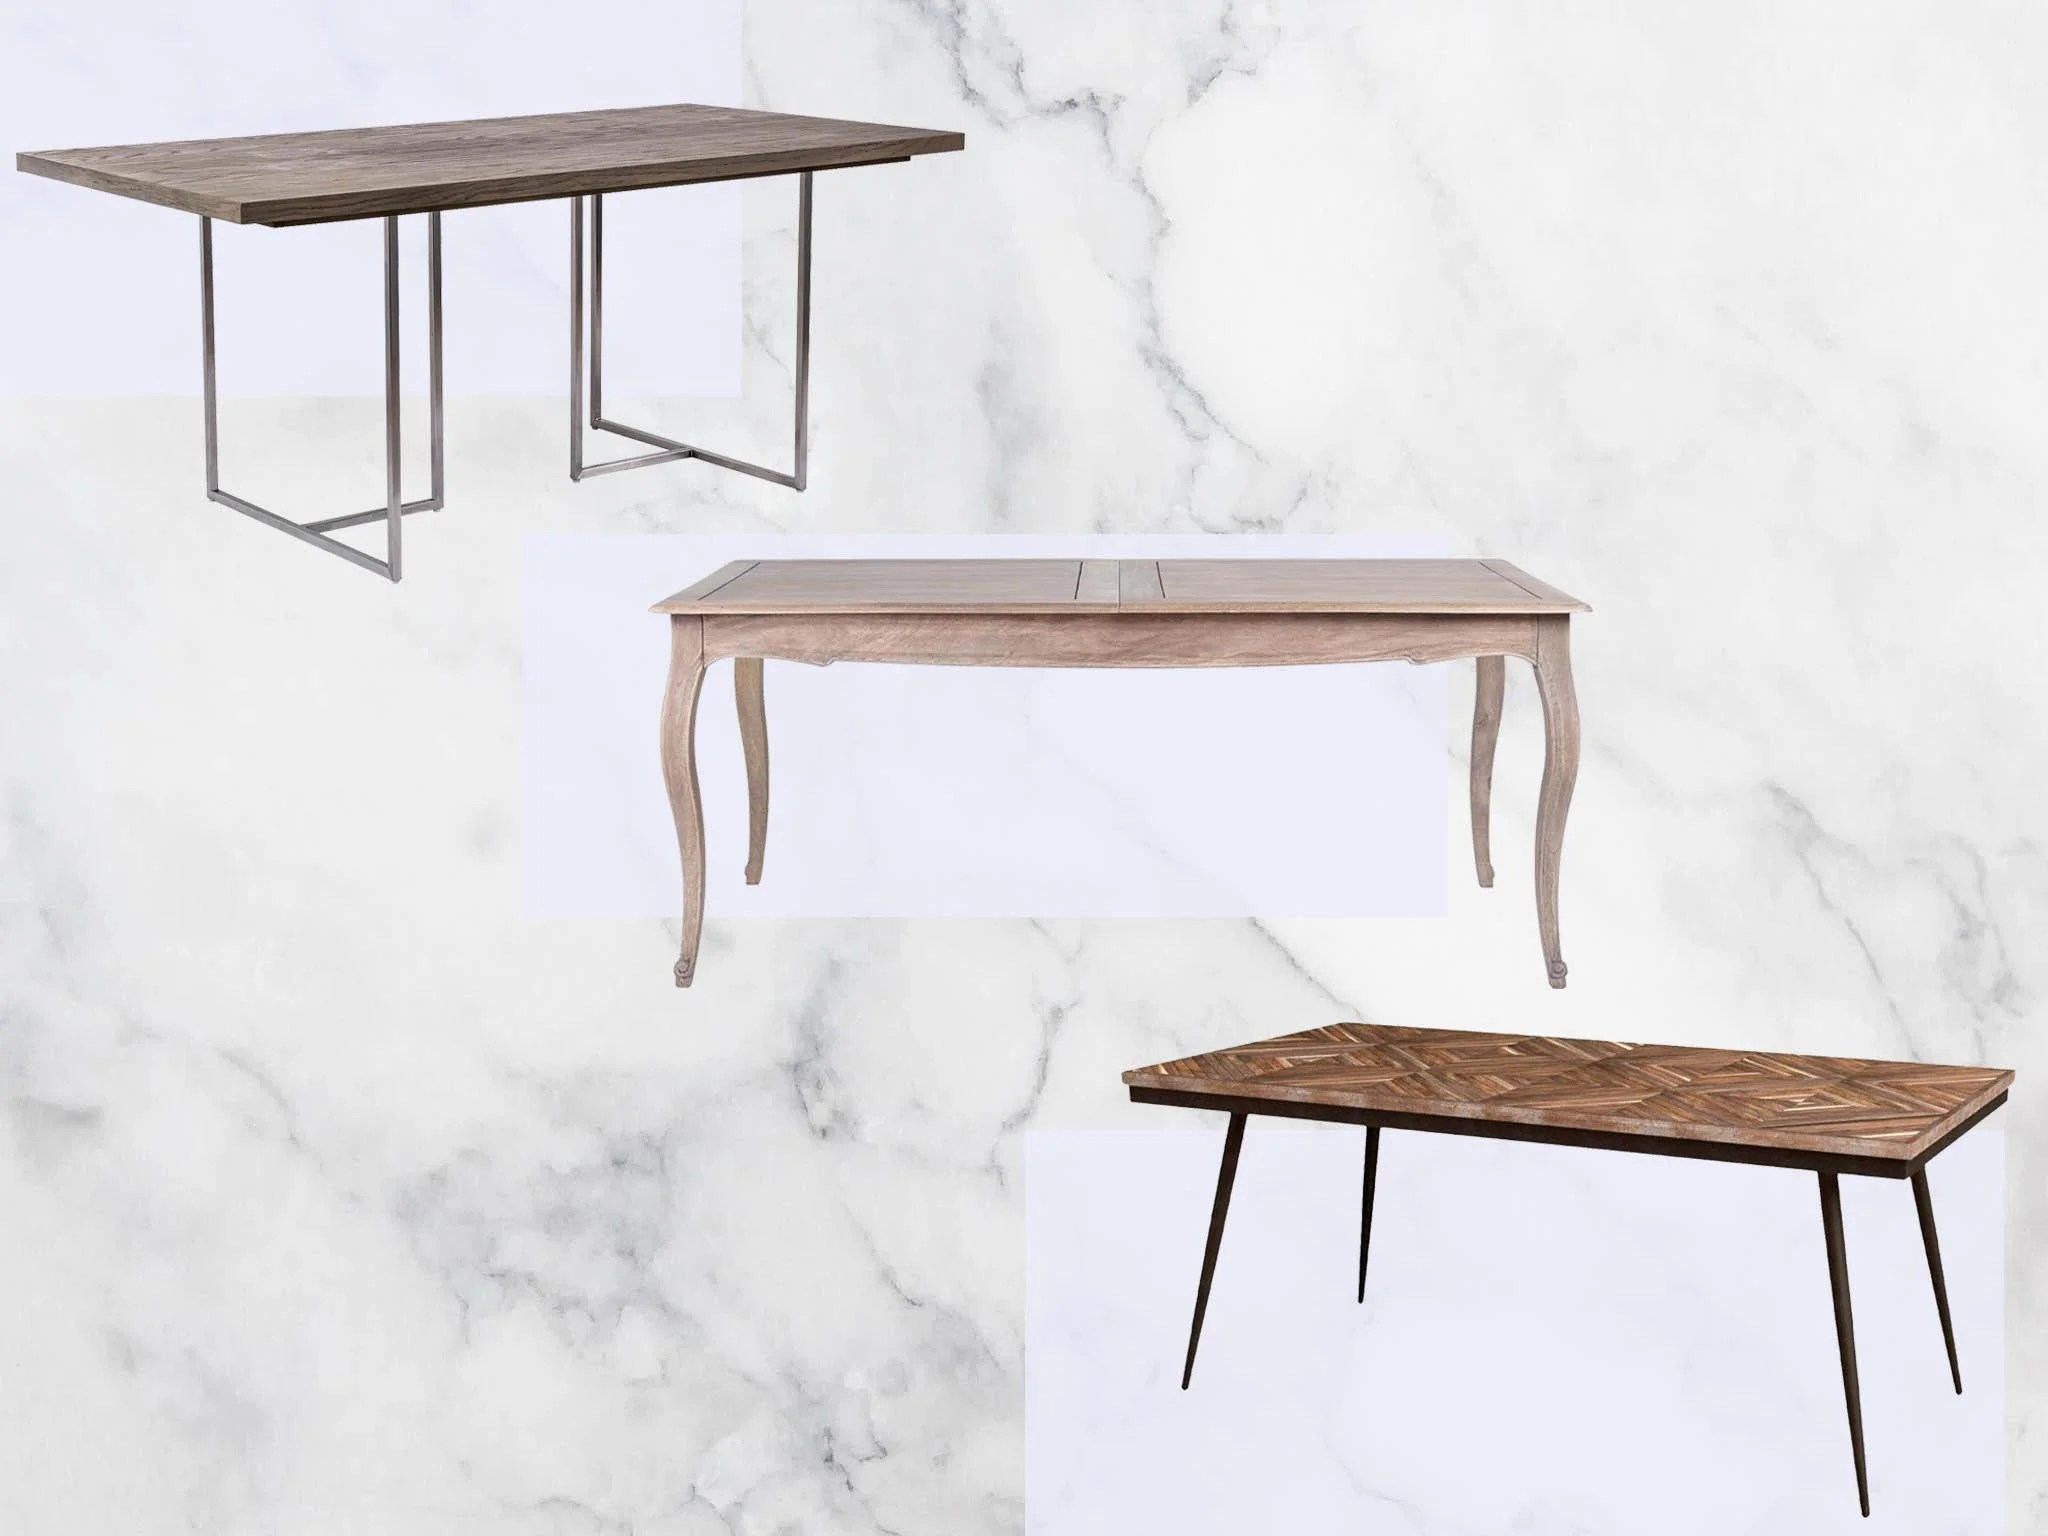 Best Dining Tables To Bring Everyone Together At Meal Times The Independent